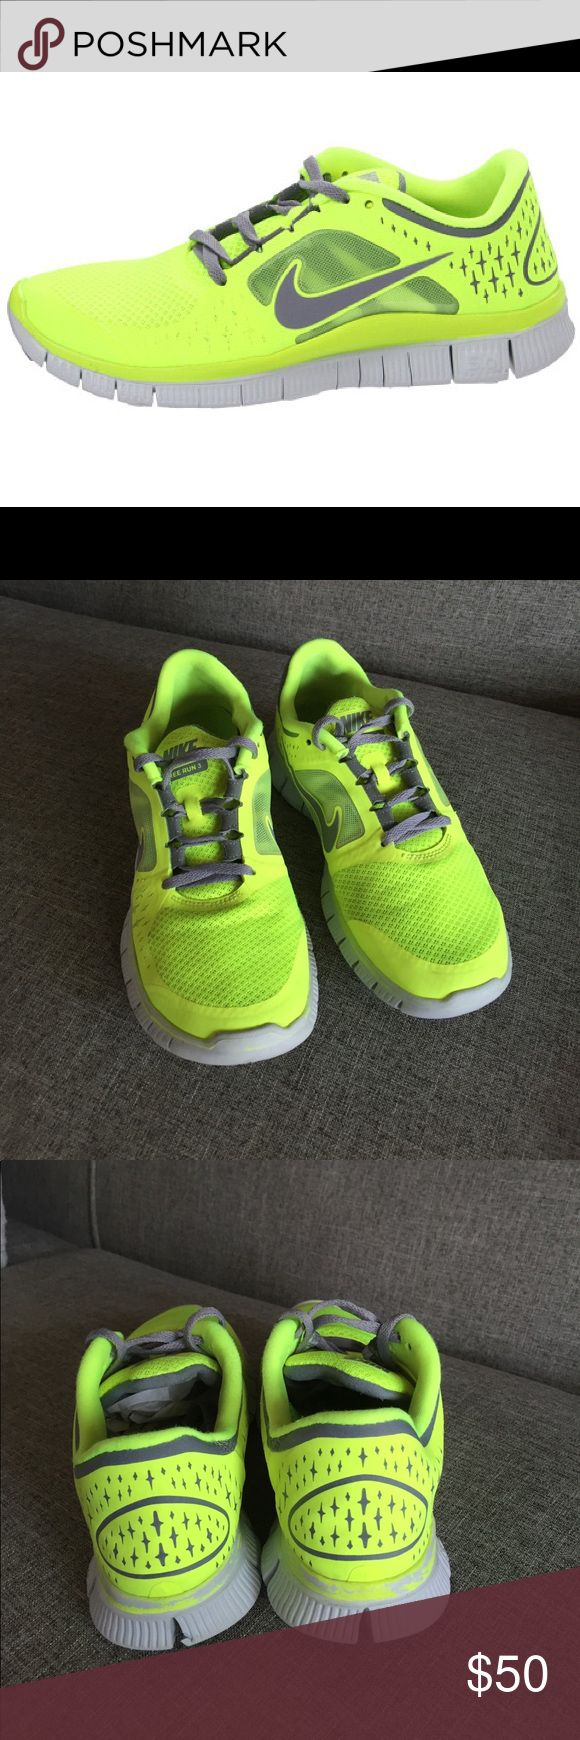 Nike Free Run 3💥 Nike Free Run 3 , neon , used a lot but still in great condition💥size 9💥 Nike Shoes Athletic Shoes